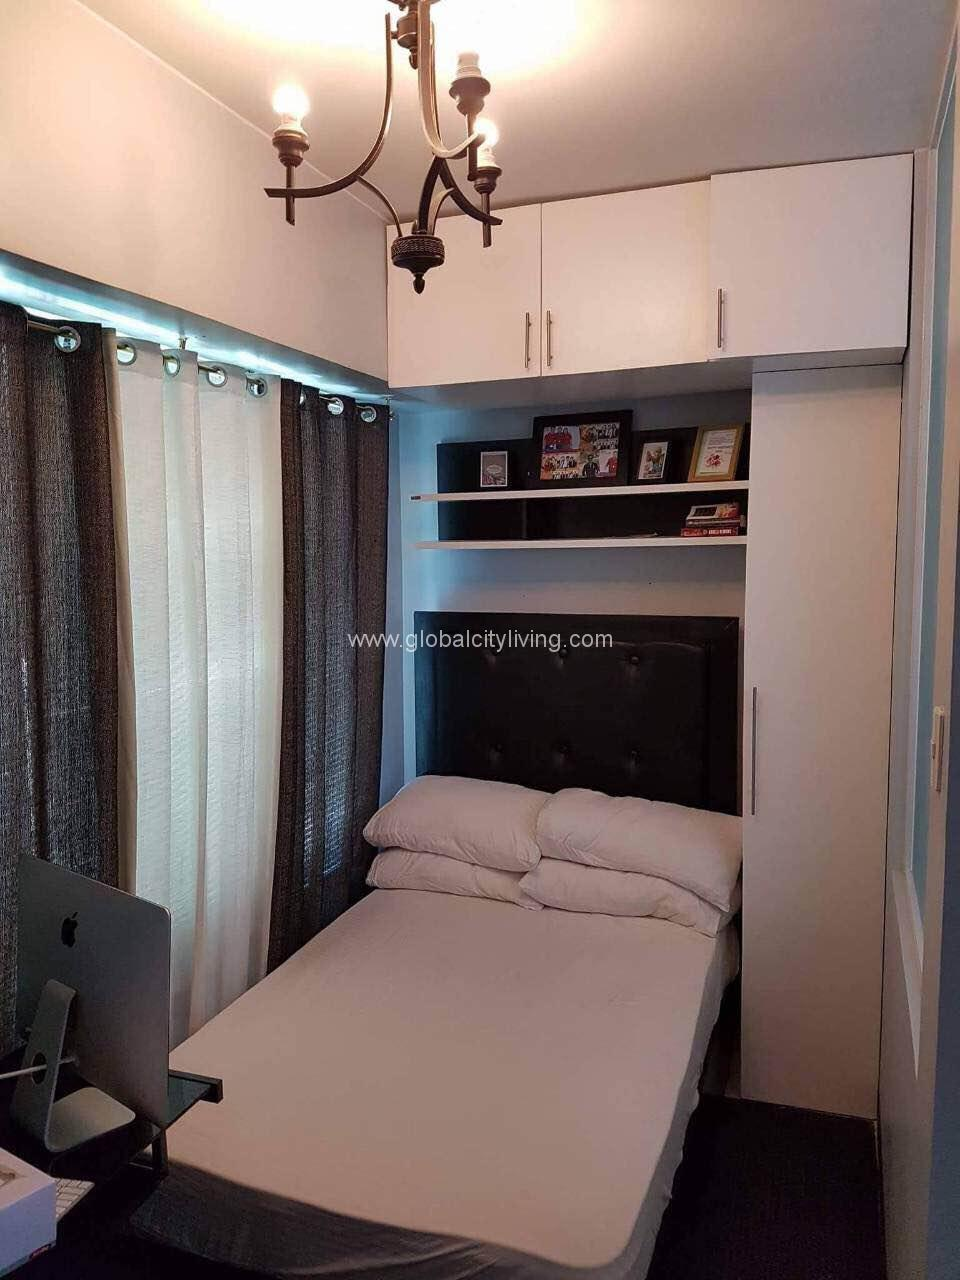 Nicely Furnished Studio Condo for Sale in Stamford